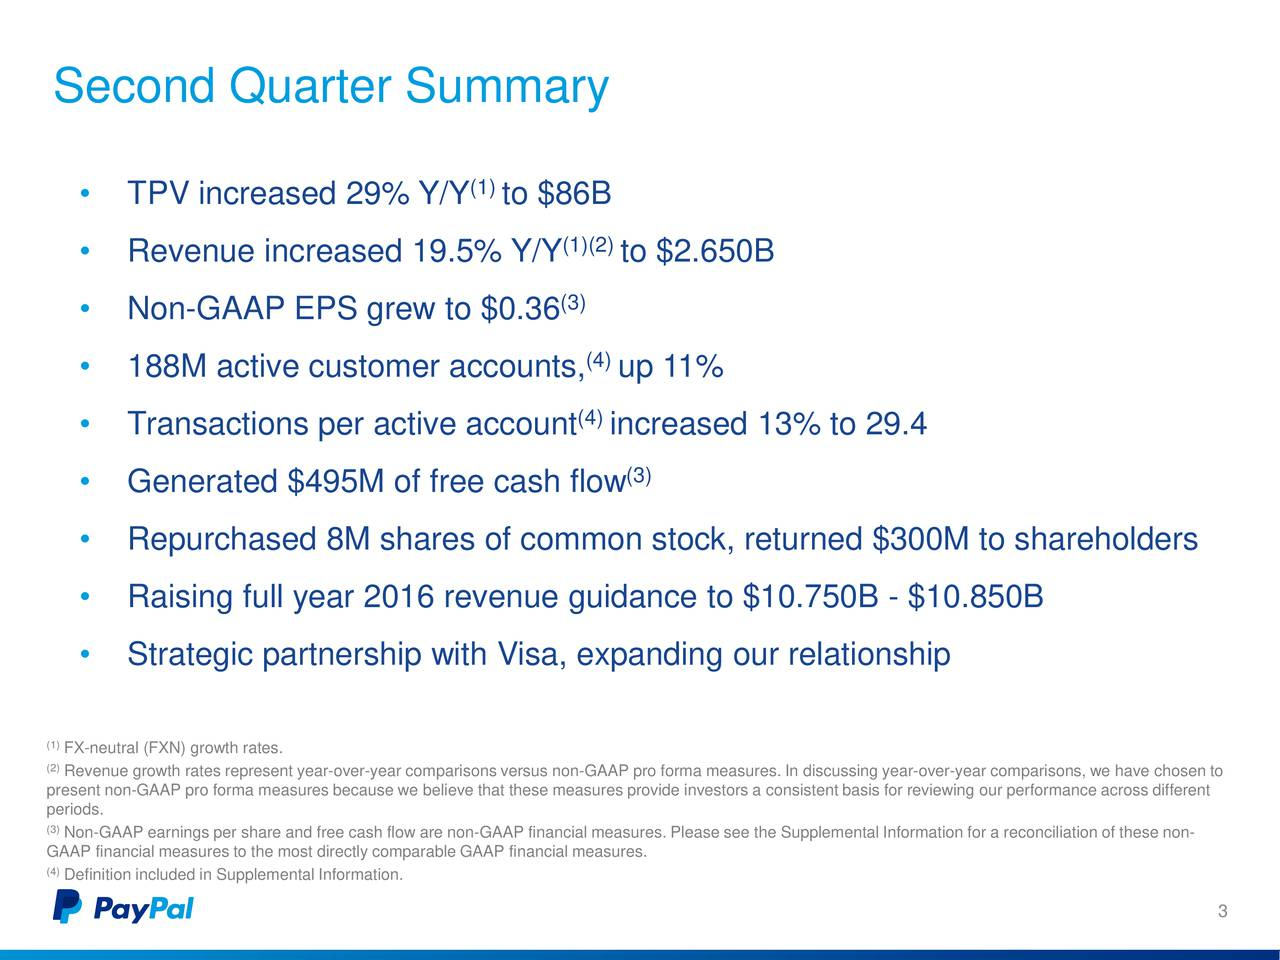 (1) TPV increased 29% Y/Y to $86B Revenue increased 19.5% Y/Y (1)(2)to $2.650B Non-GAAP EPS grew to $0.36 (3) (4) 188M active customer accounts, up 11% (4) Transactions per active account increased 13% to 29.4 Generated $495M of free cash flow (3) Repurchased 8M shares of common stock, returned$300M to shareholders Raising full year 2016 revenue guidance to $10.750B - $10.850B Strategic partnership with Visa, expanding our relationship (1FX-neutral (FXN) growth rates. (2Revenue growth rates represent year-over-year comparisons versus non-GAAP pro forma measures. In discussing year-over-year comparisons, we have chosen to periods.non-GAAP pro forma measures because we believe that these measures provide investors a consistent basis for reviewing our performance across different (3Non-GAAP earnings per share and free cash flow are non-GAAP financial measures. Please see the Supplemental Information for a reconciliation of these non- GAAP financial measures to the most directly comparable GAAP financial measures. (4Definition included in Supplemental Information. 3